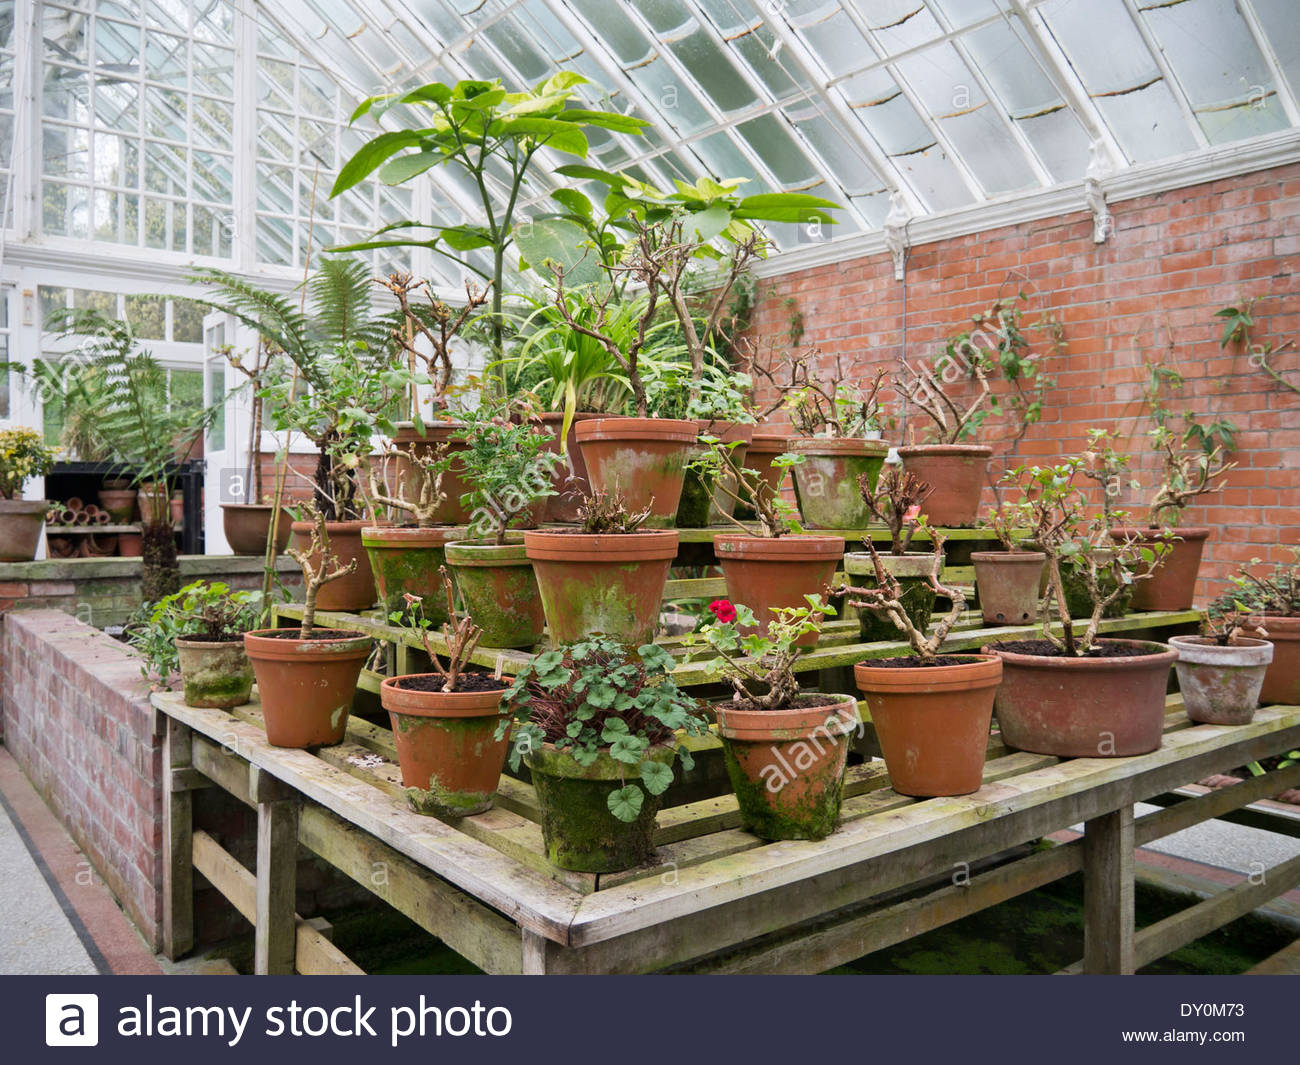 Pots and plants in the greenhouse at Hergest Croft Gardens: Kington, Herefordshire, England. - Stock Image